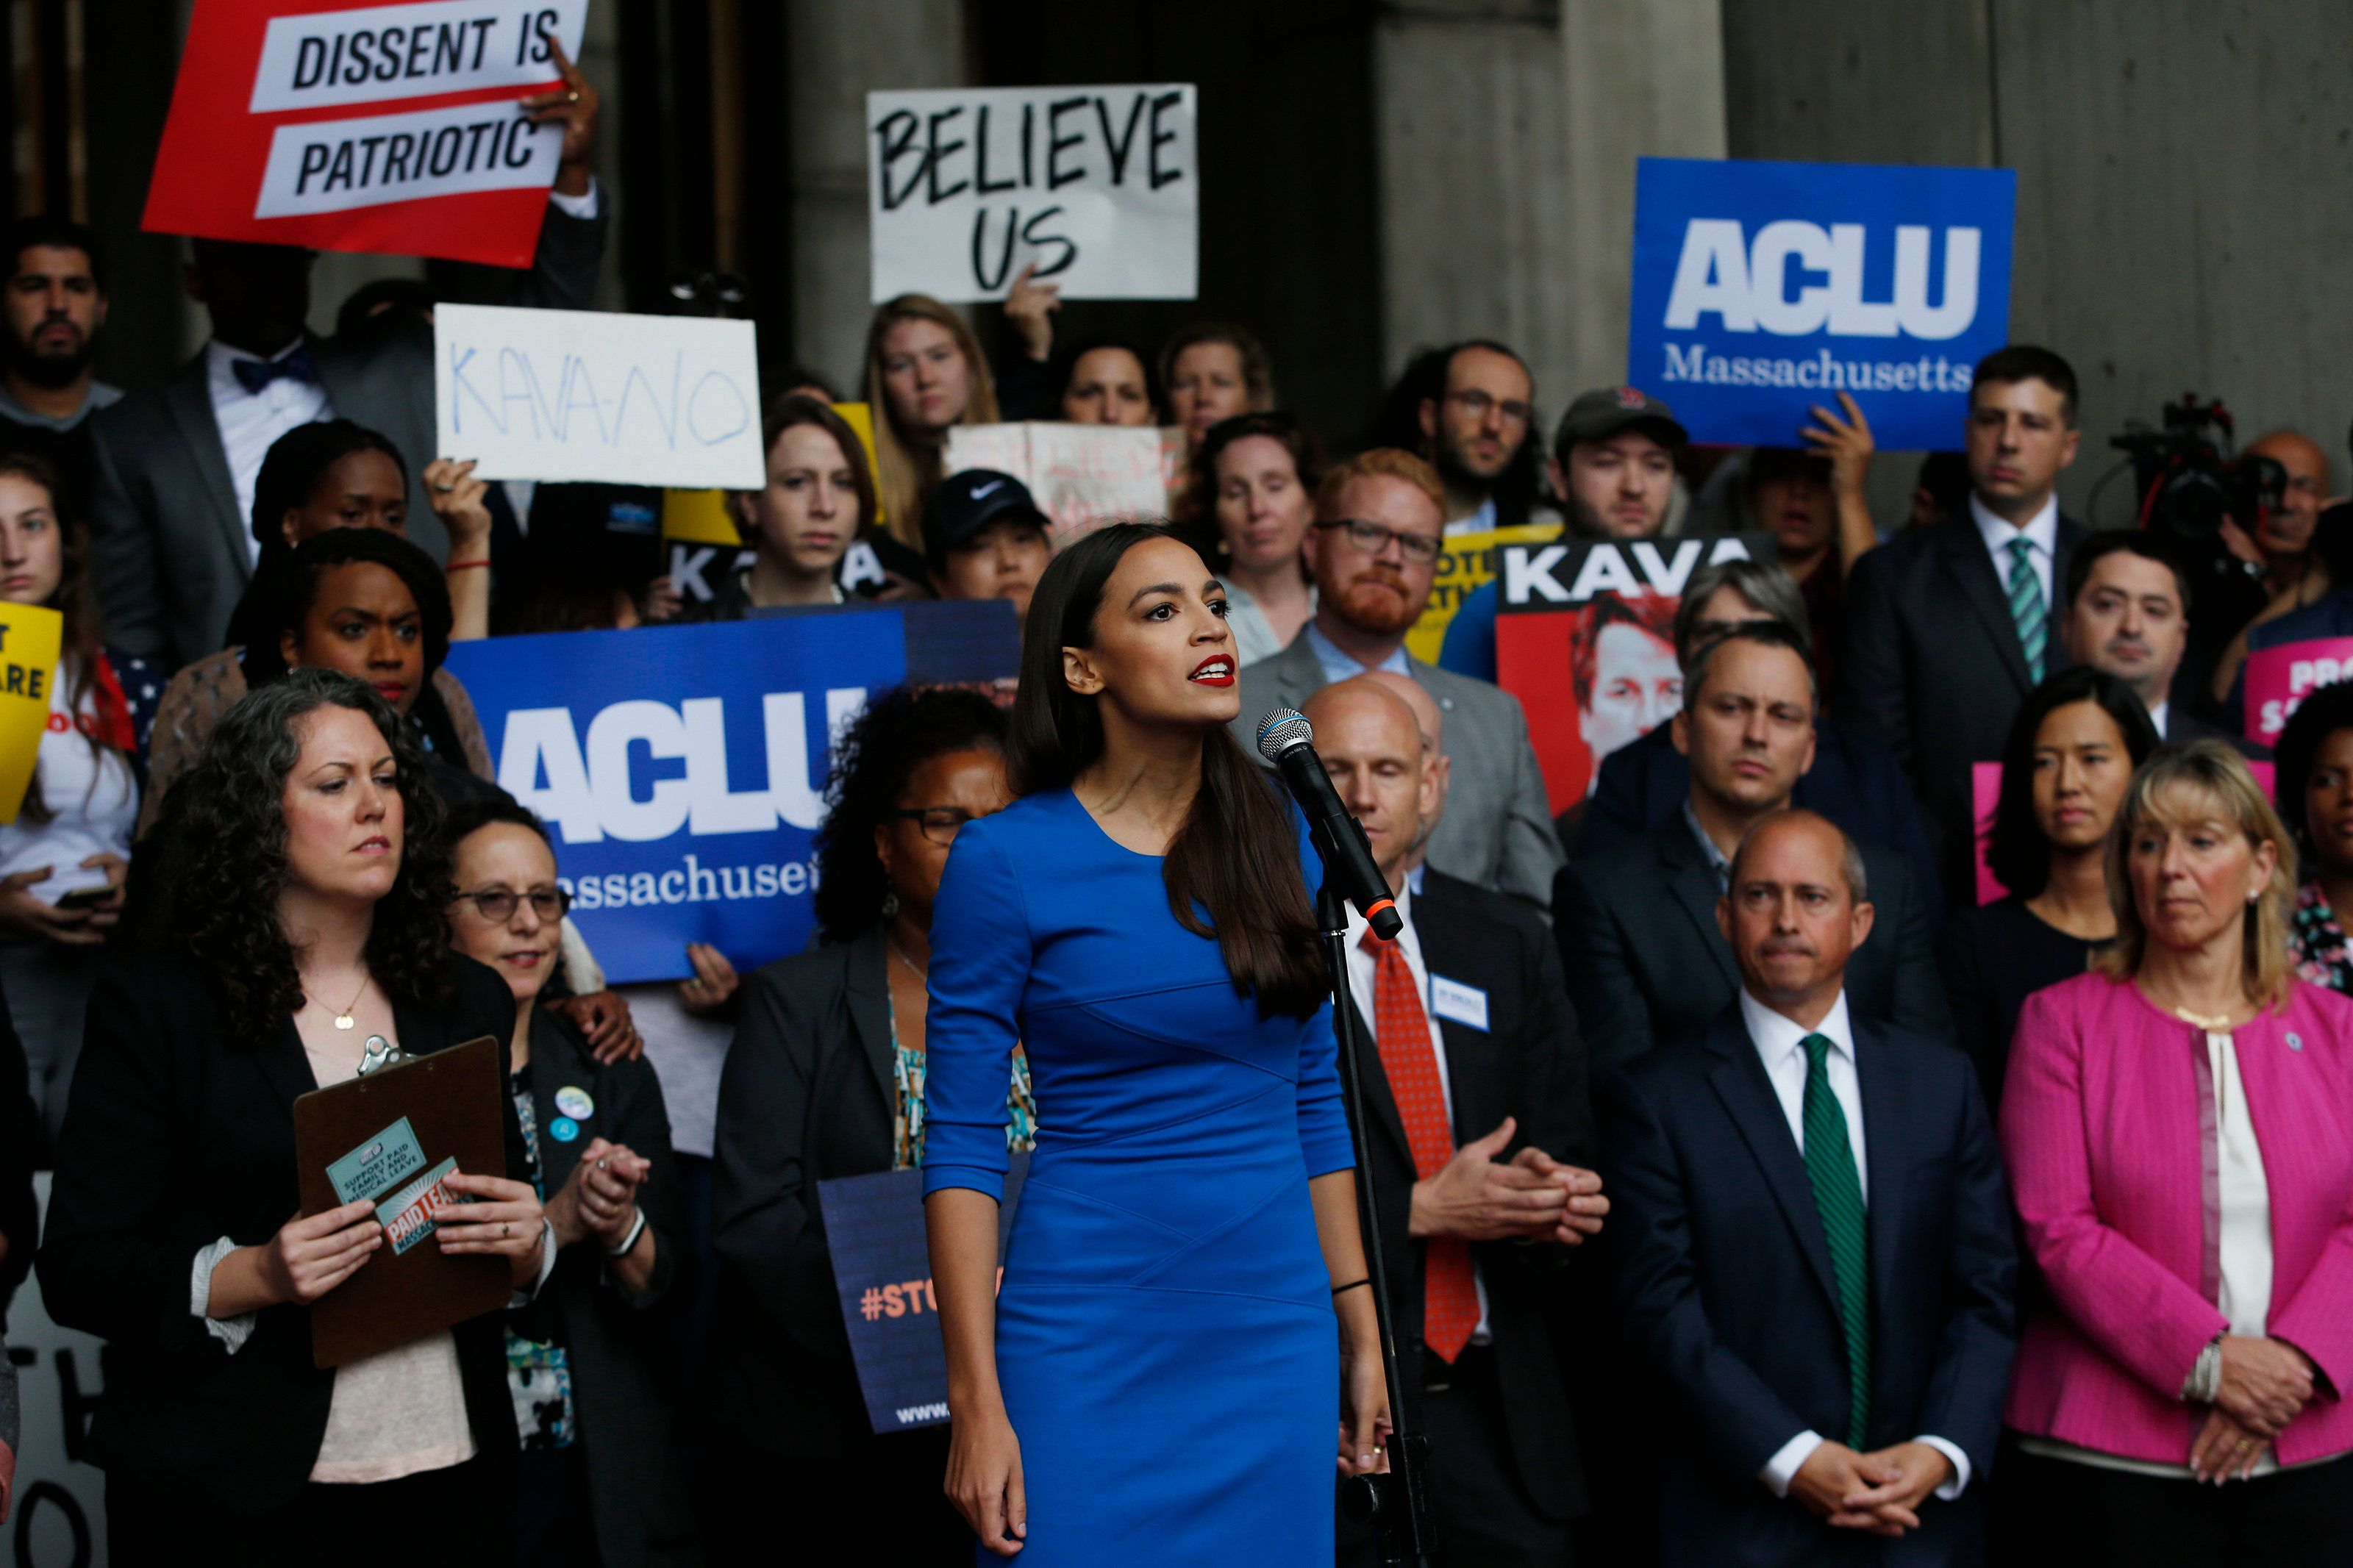 NY Democrat Ocasio-Cortez set to become youngest Congresswoman ever